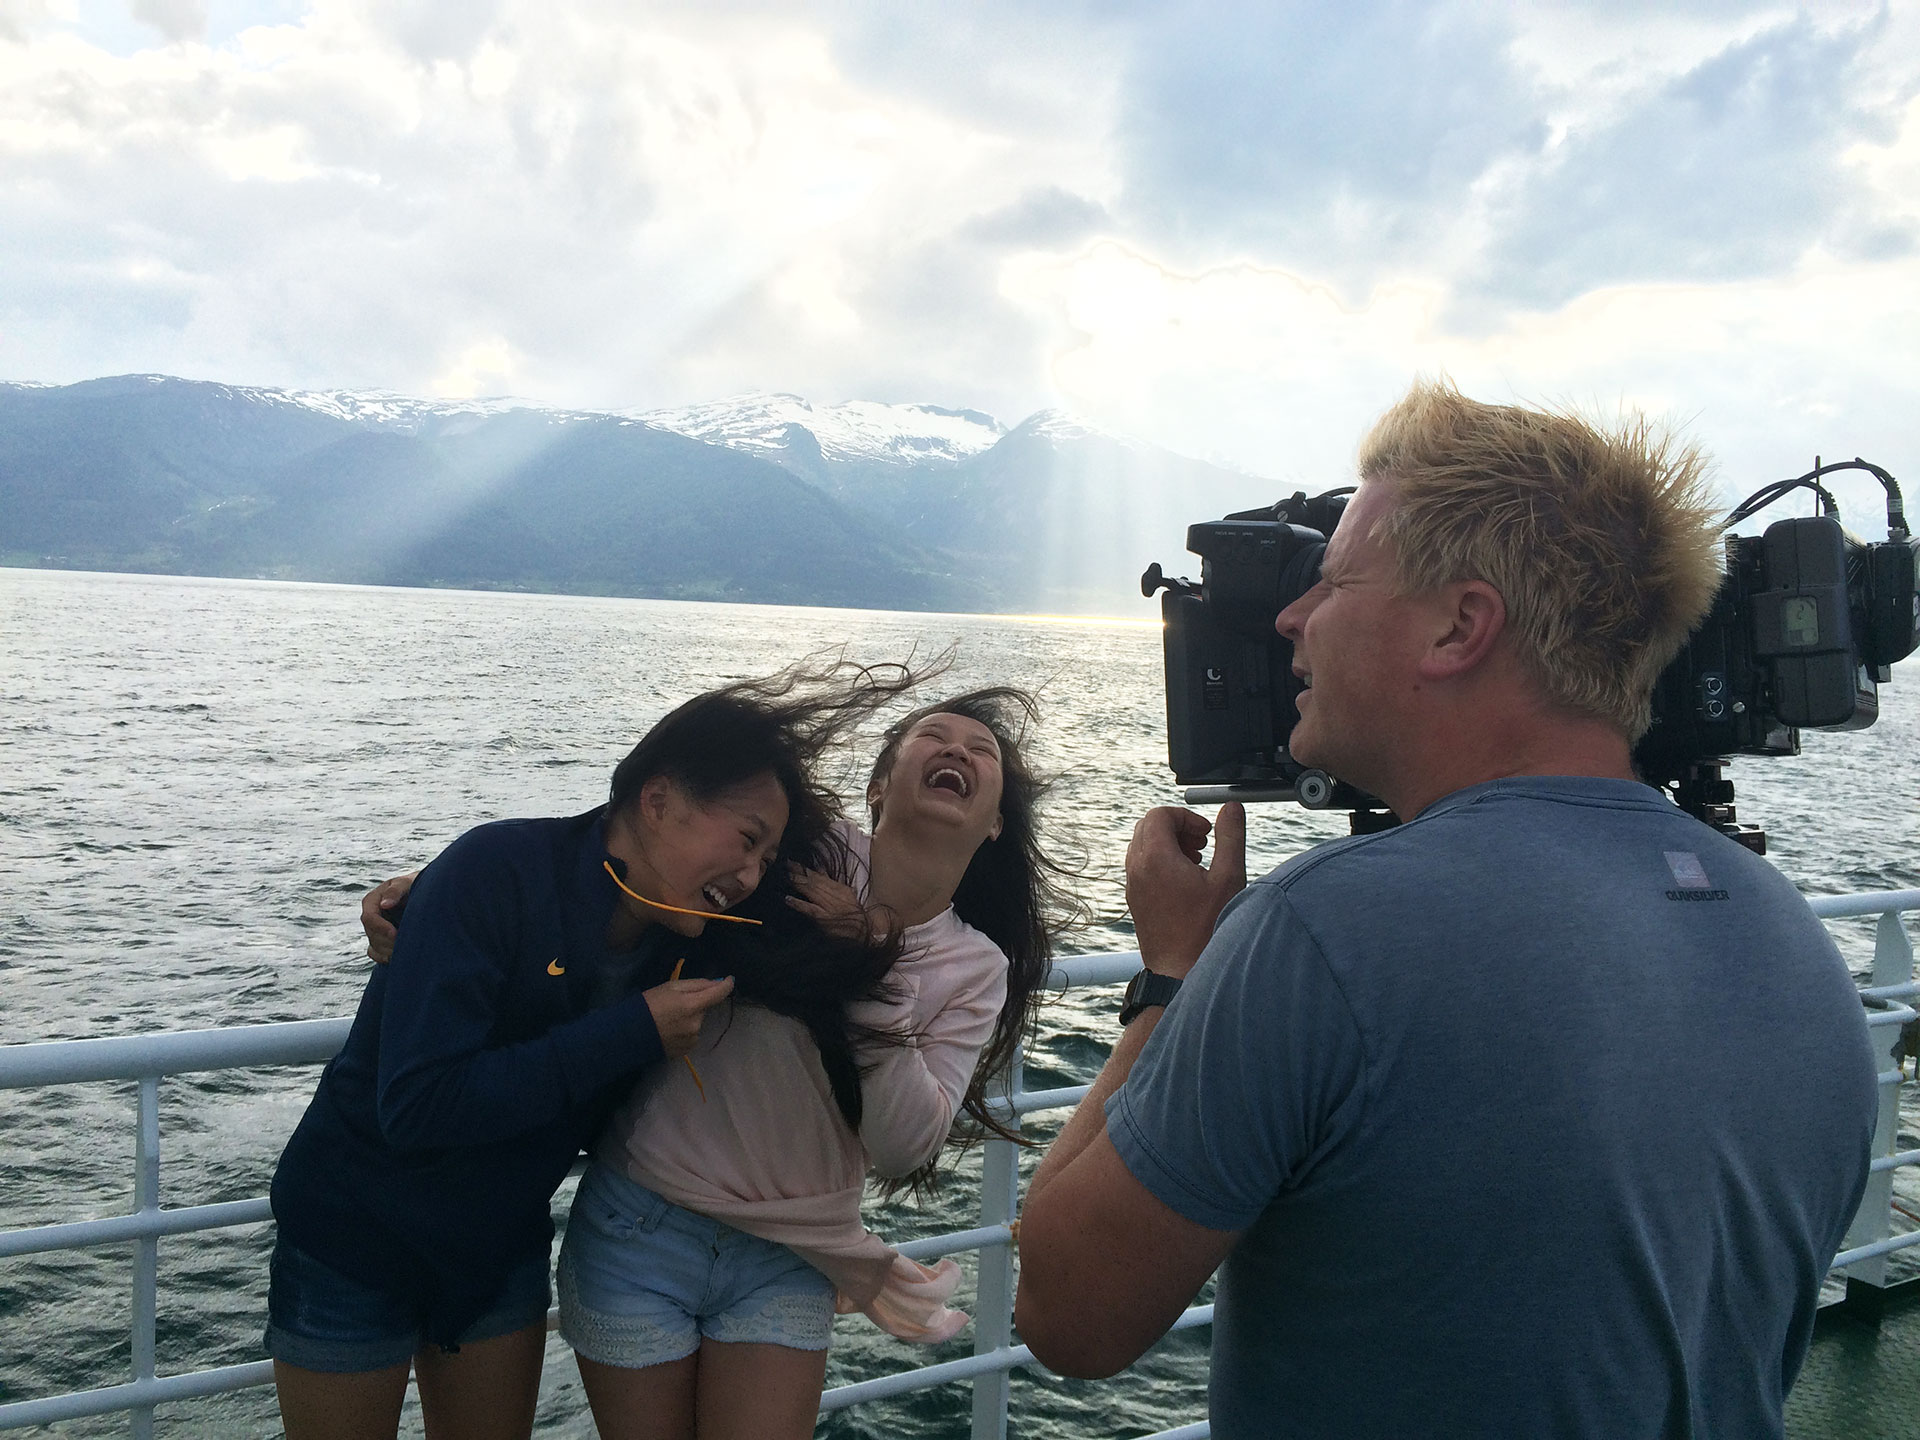 Alex and Mia laugh while a film cameraman shoots them on a boat in Norway